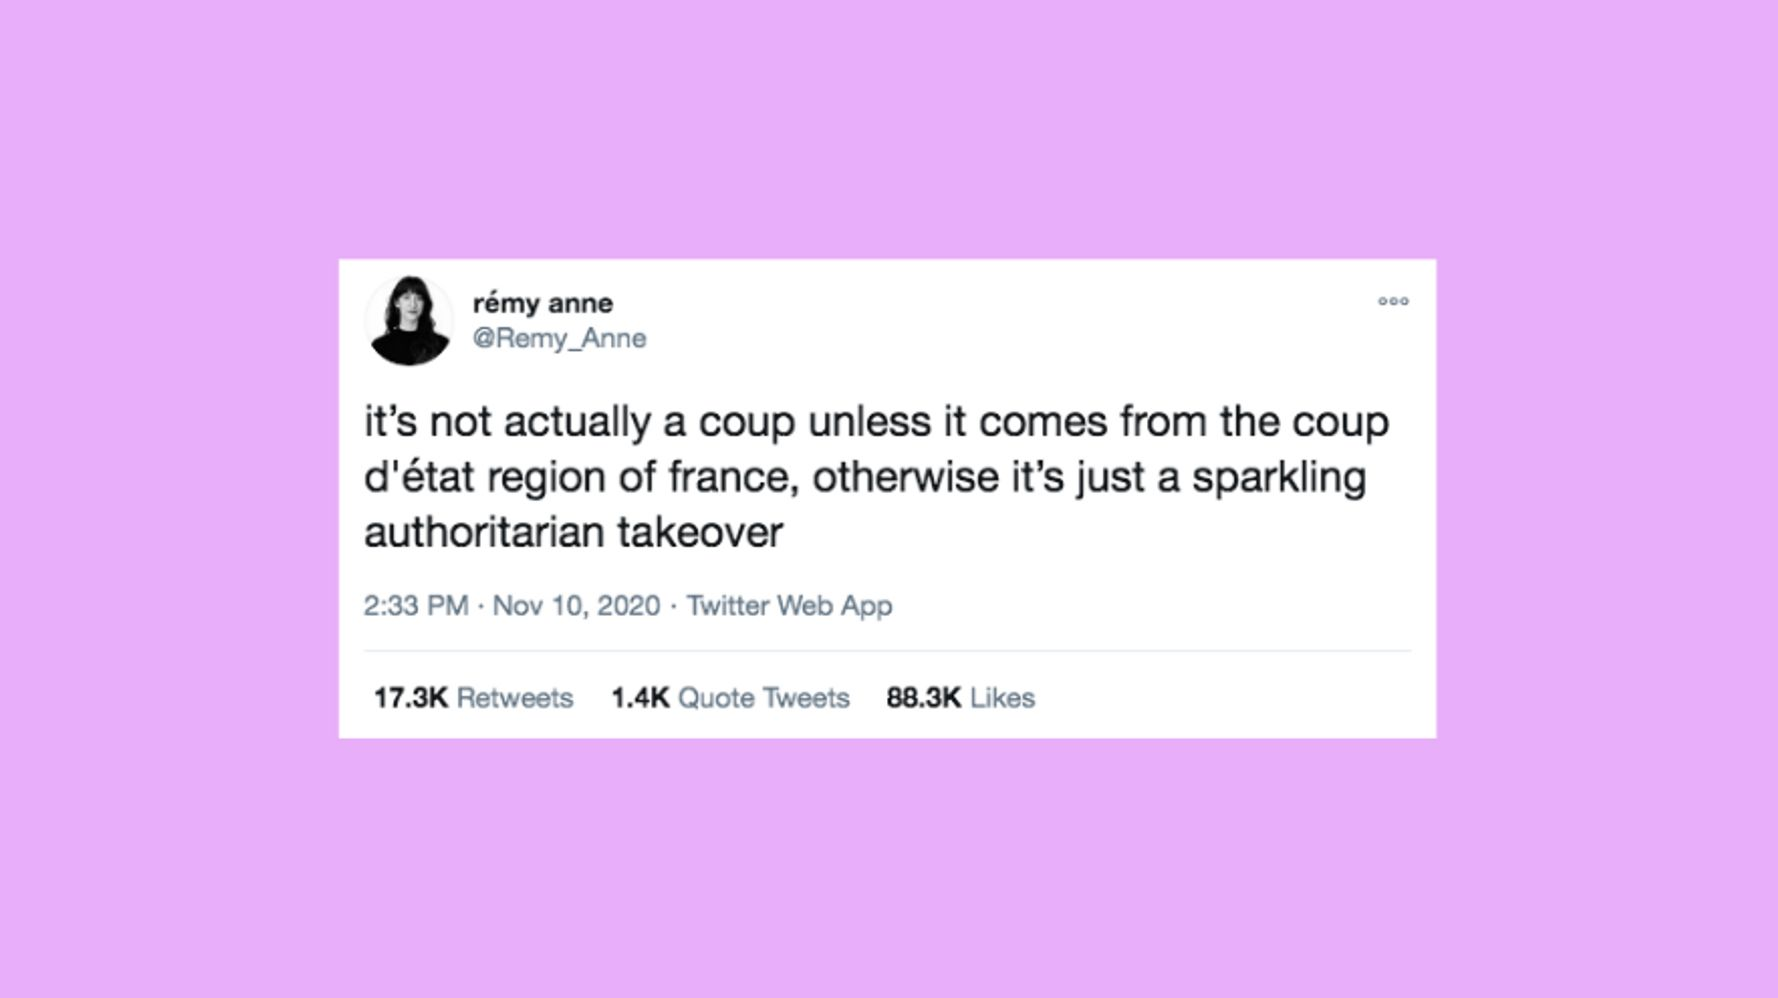 The 20 Funniest Tweets From Women This Week (Nov. 7-13)